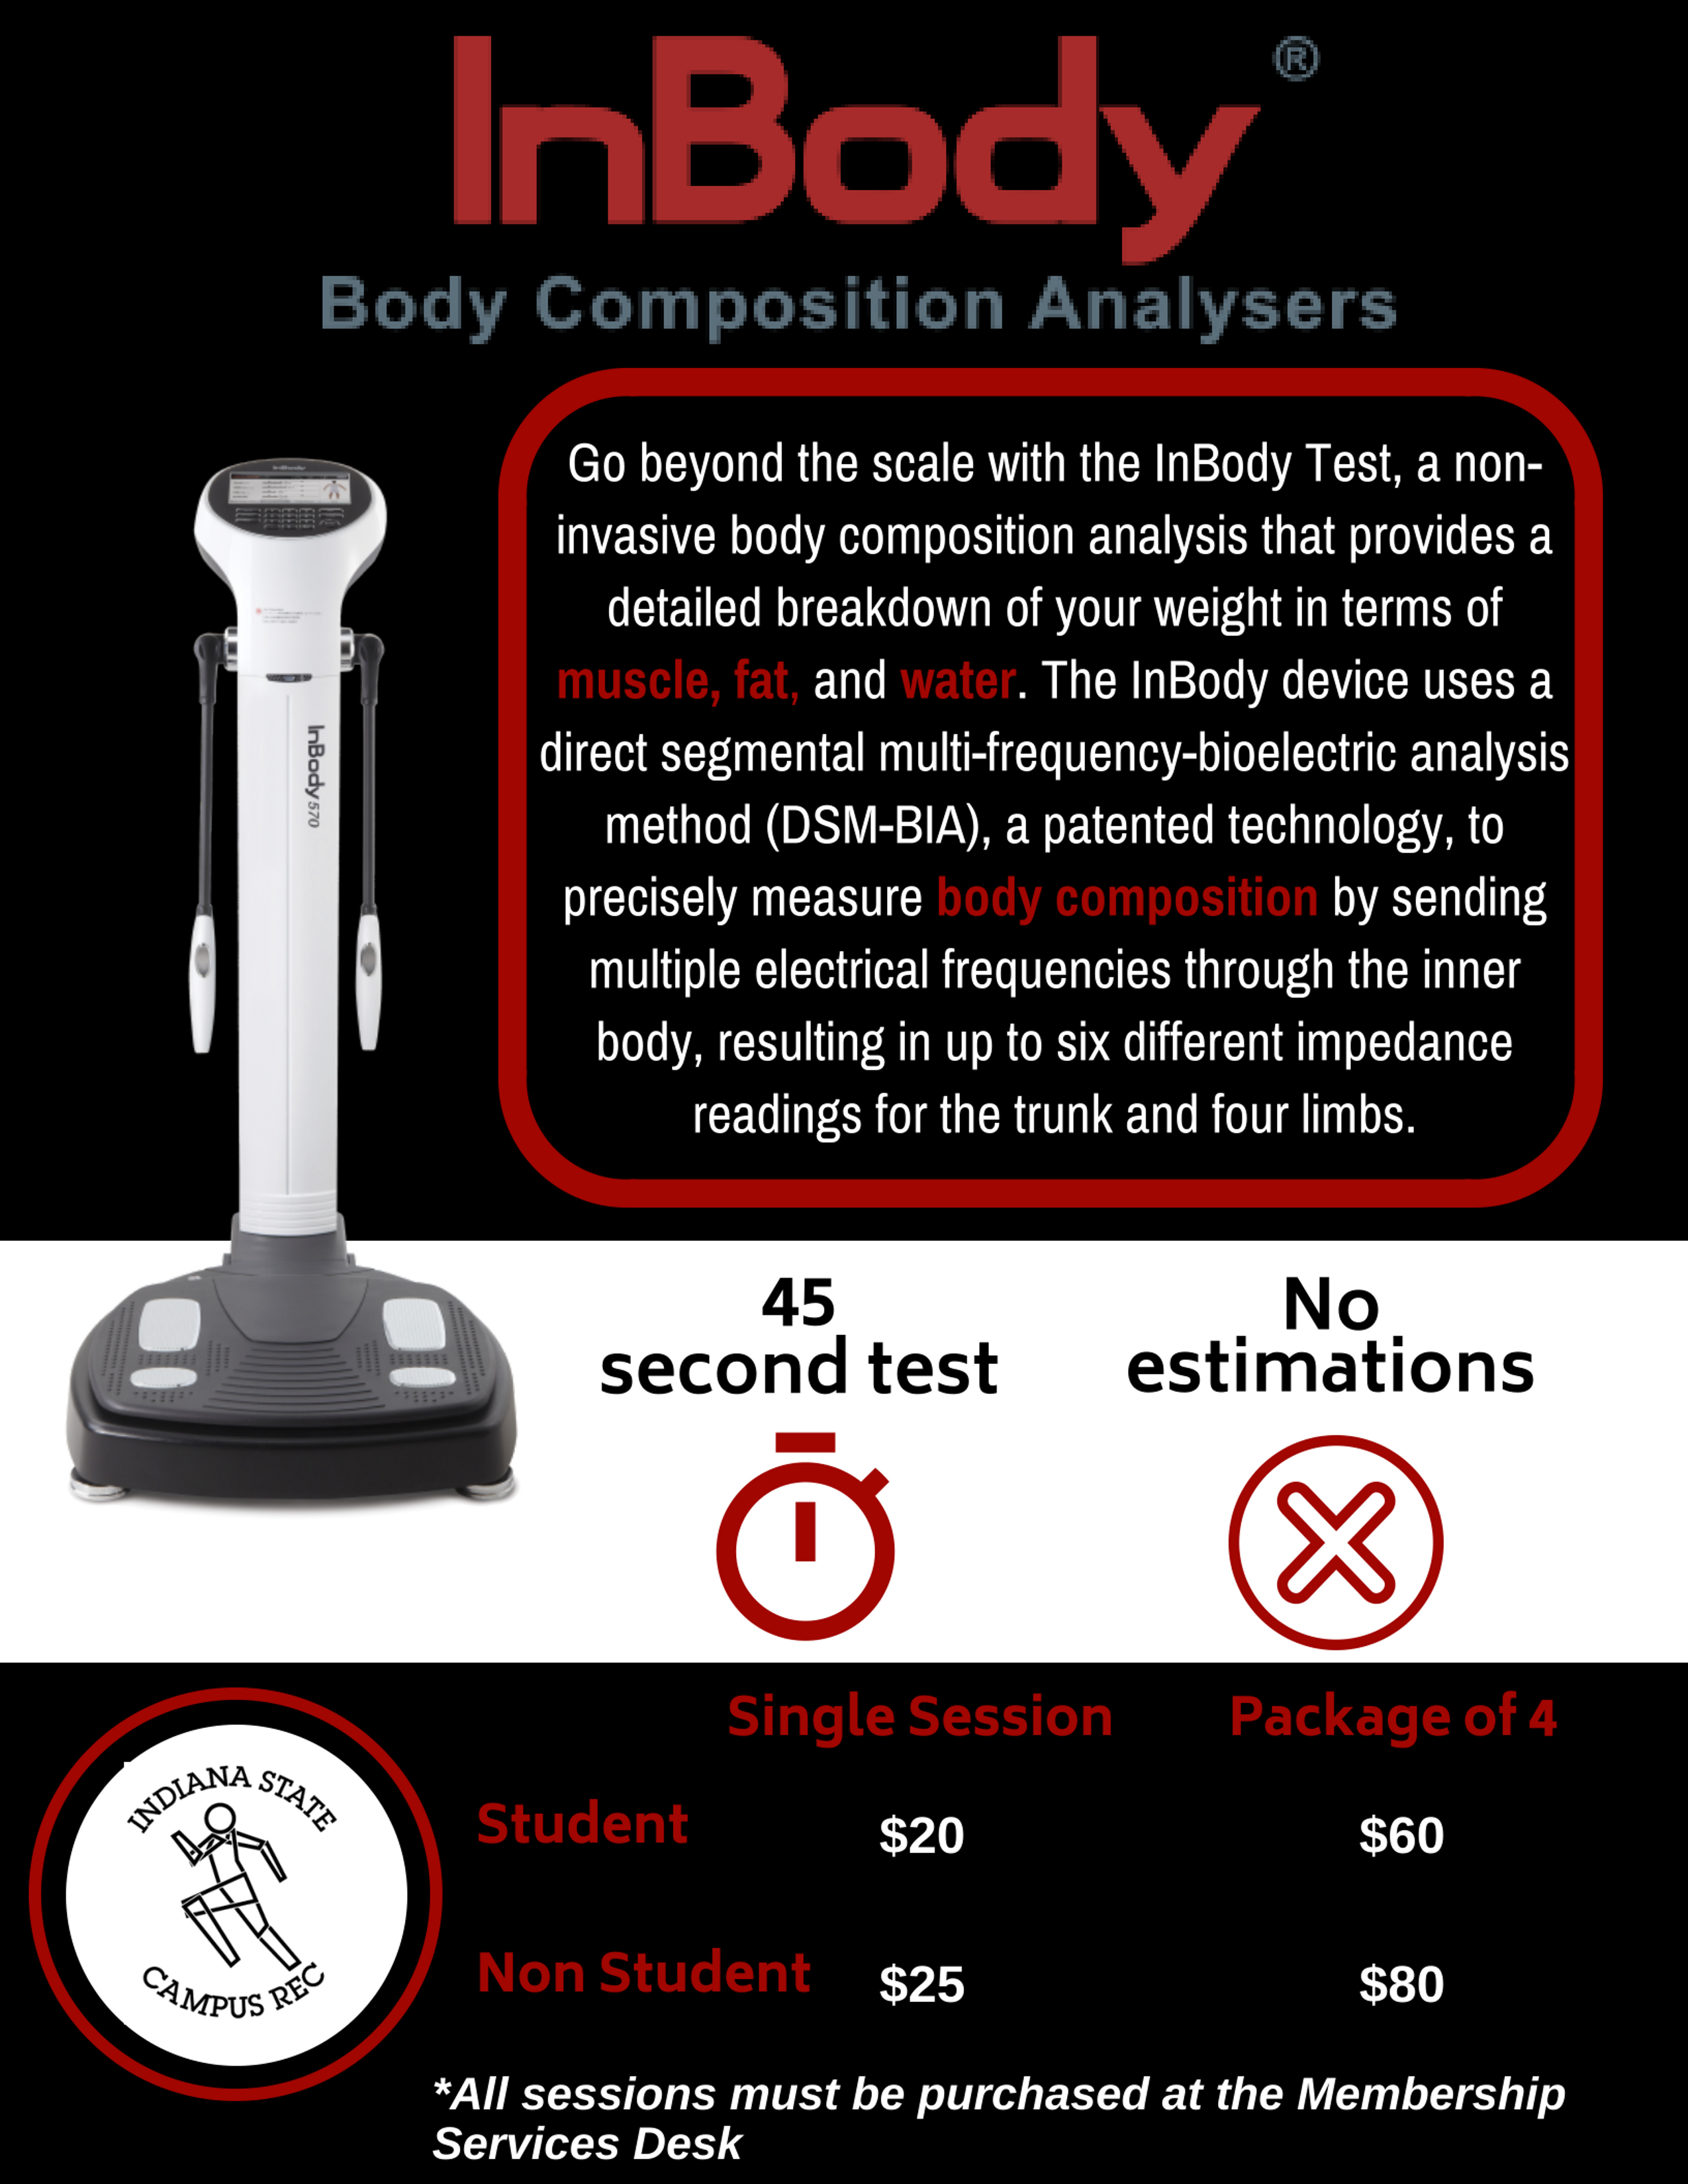 InBody Analysis information